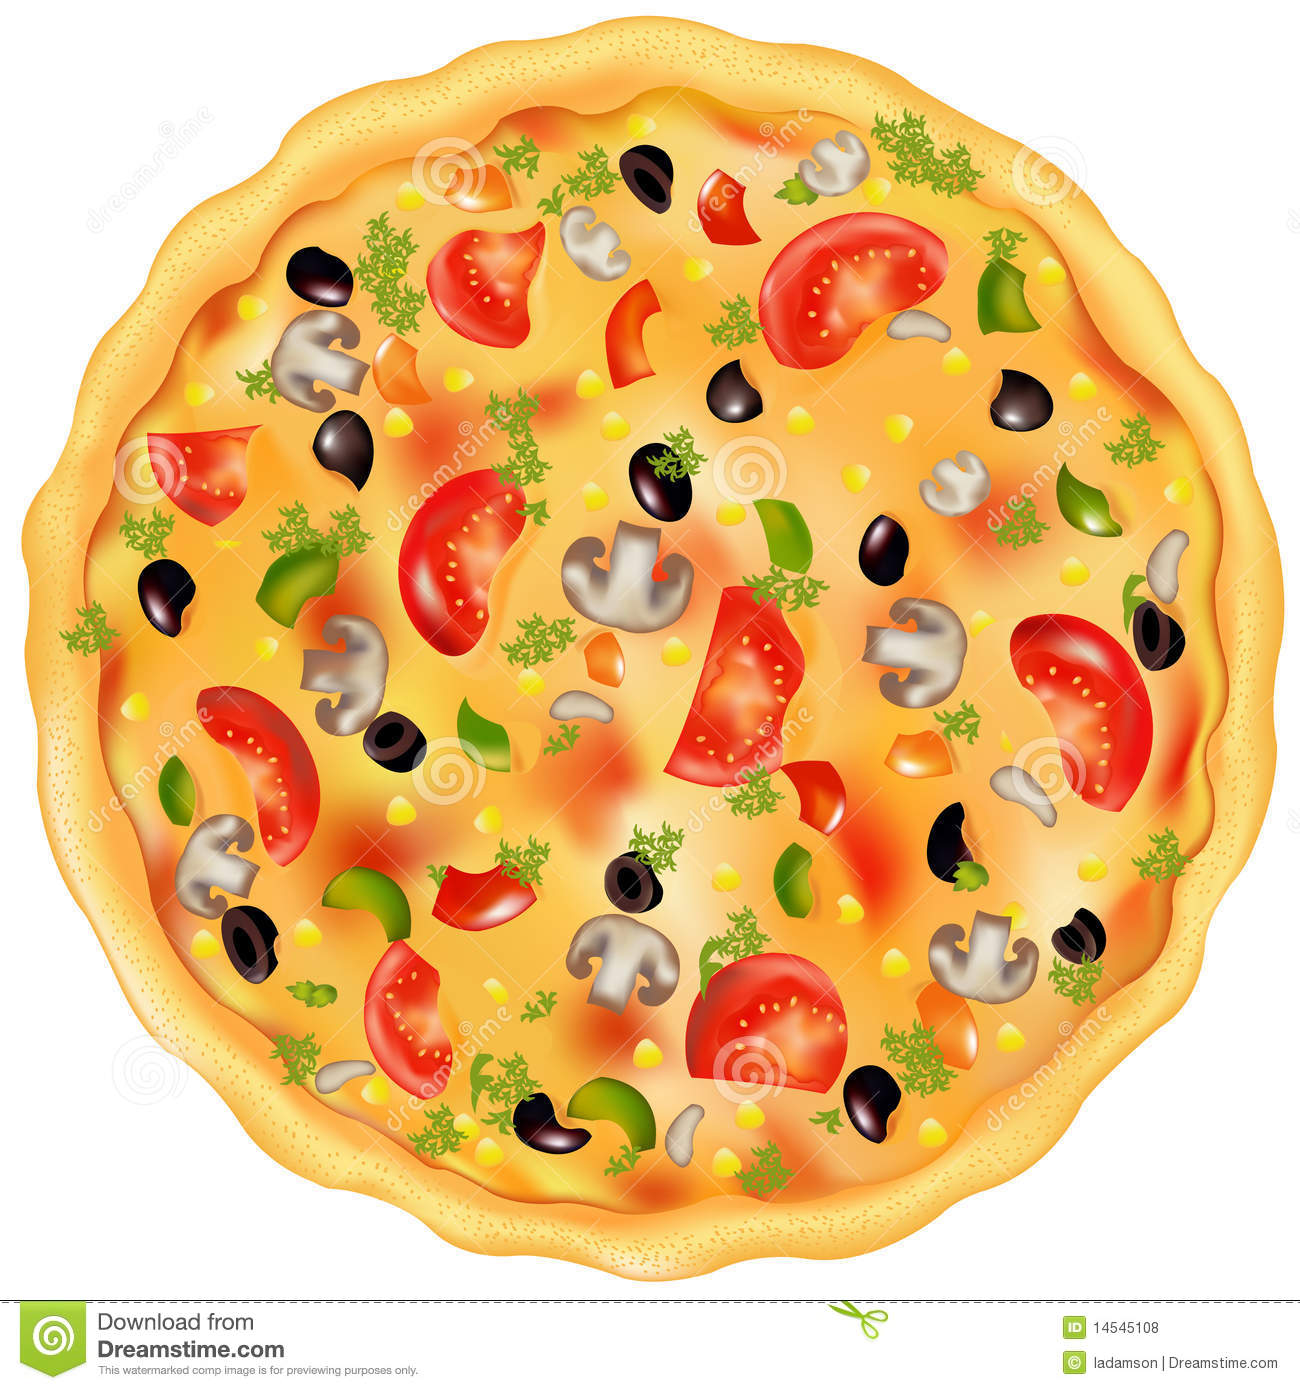 10 Pepperoni Pizza Vector Free Images